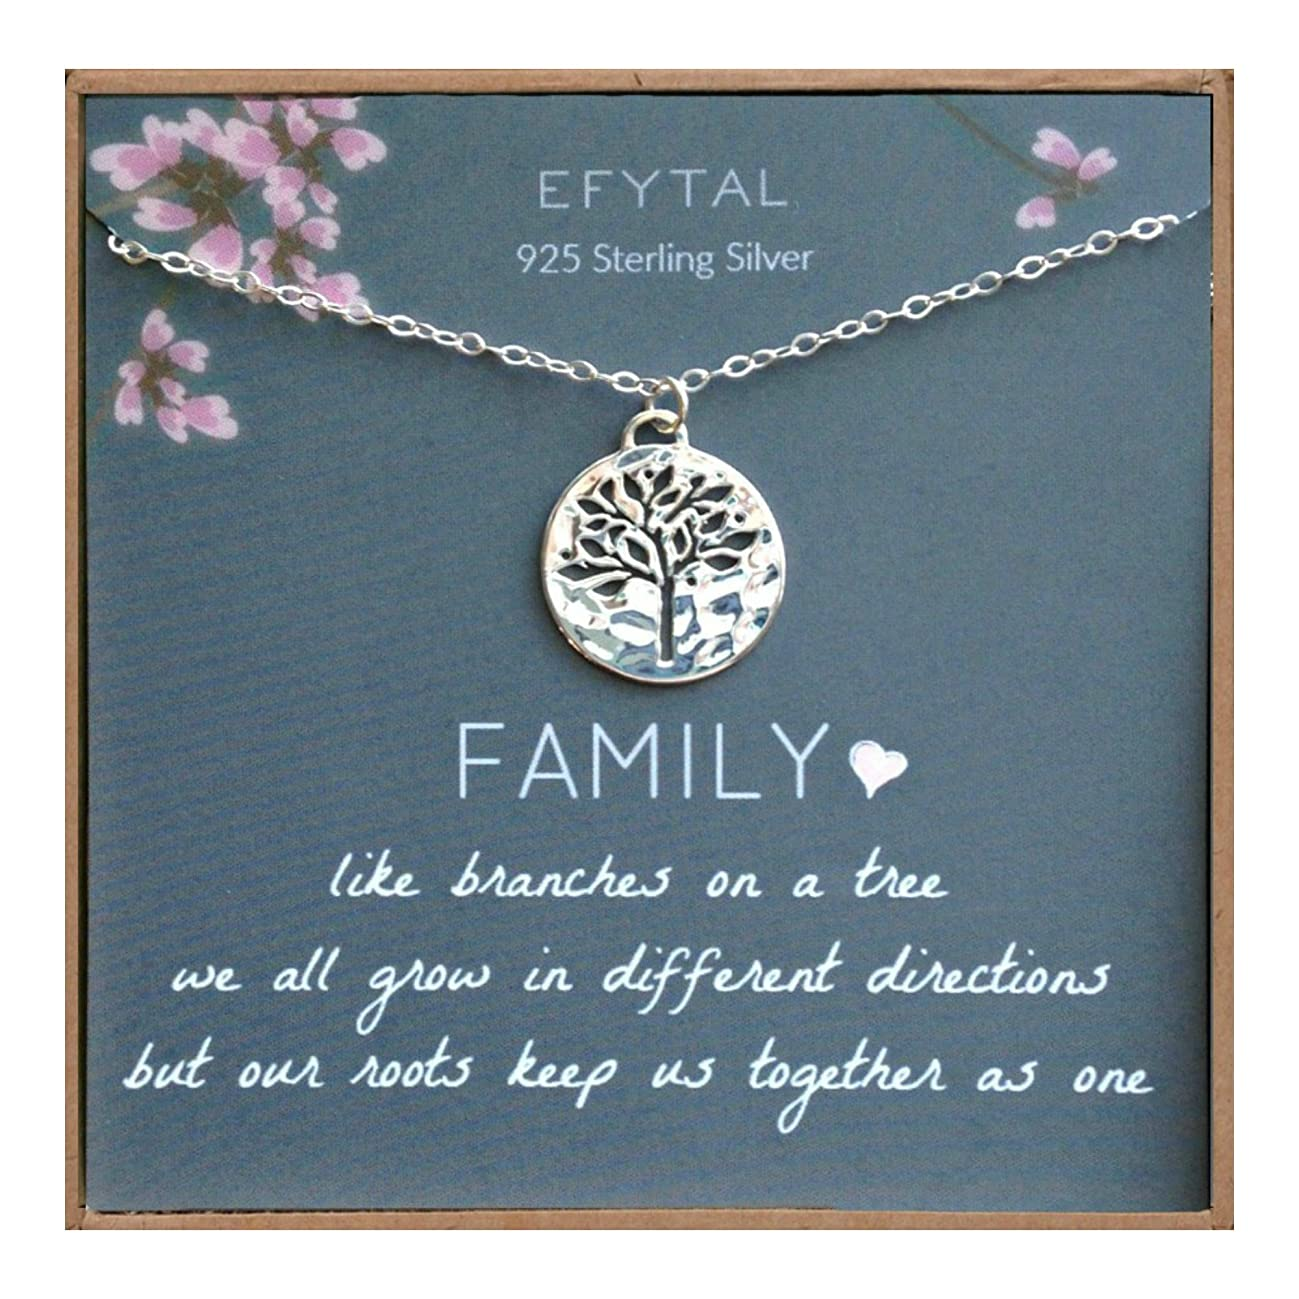 EFYTAL Grandma Gifts, 925 Sterling Silver Family Tree of Life Necklace, Mother's Day Jewelry Gift Ideas